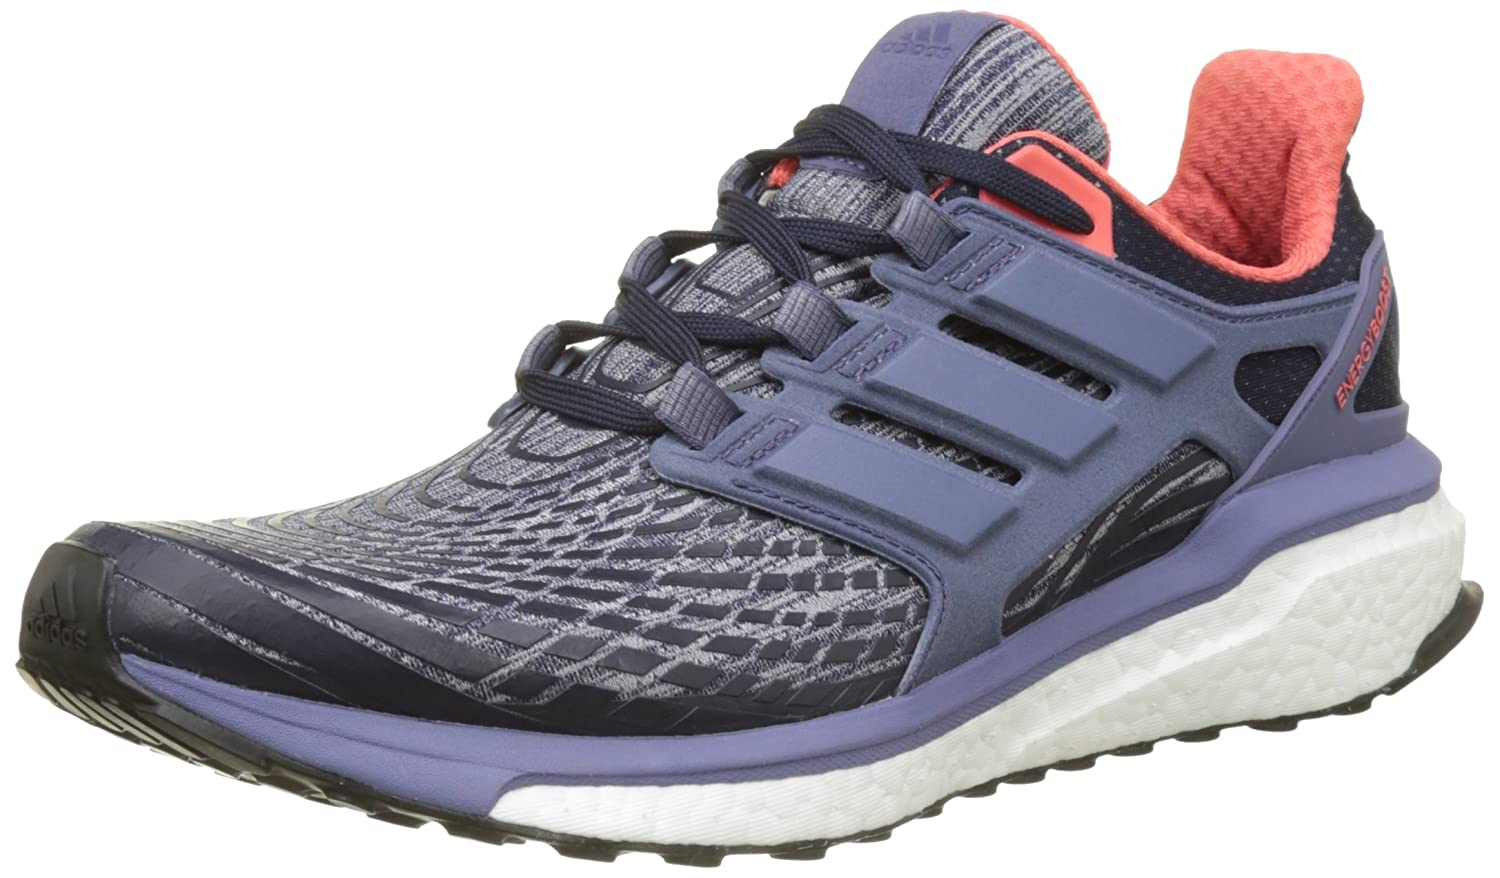 Image result for Women Adidas Energy Boost 3